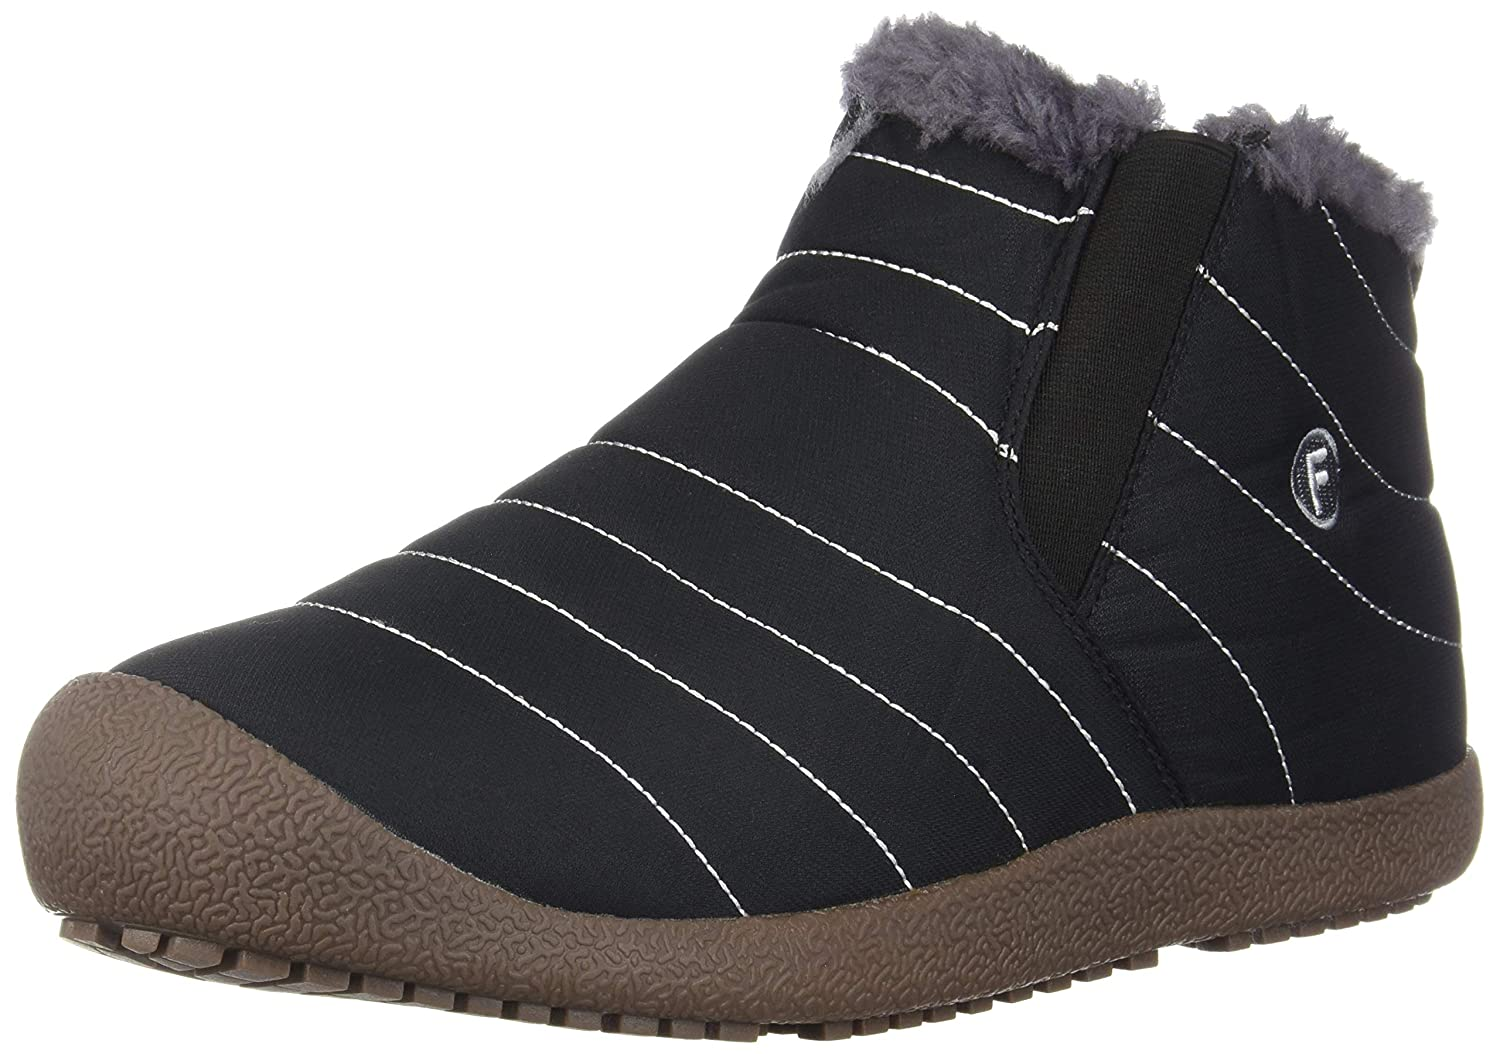 4acaab060704b1 YIRUIYA Mens Anti-Slip Snow Boots with Fully Fur Lined High Top/Low Top  Winter Warm Sneakers: Amazon.ca: Shoes & Handbags